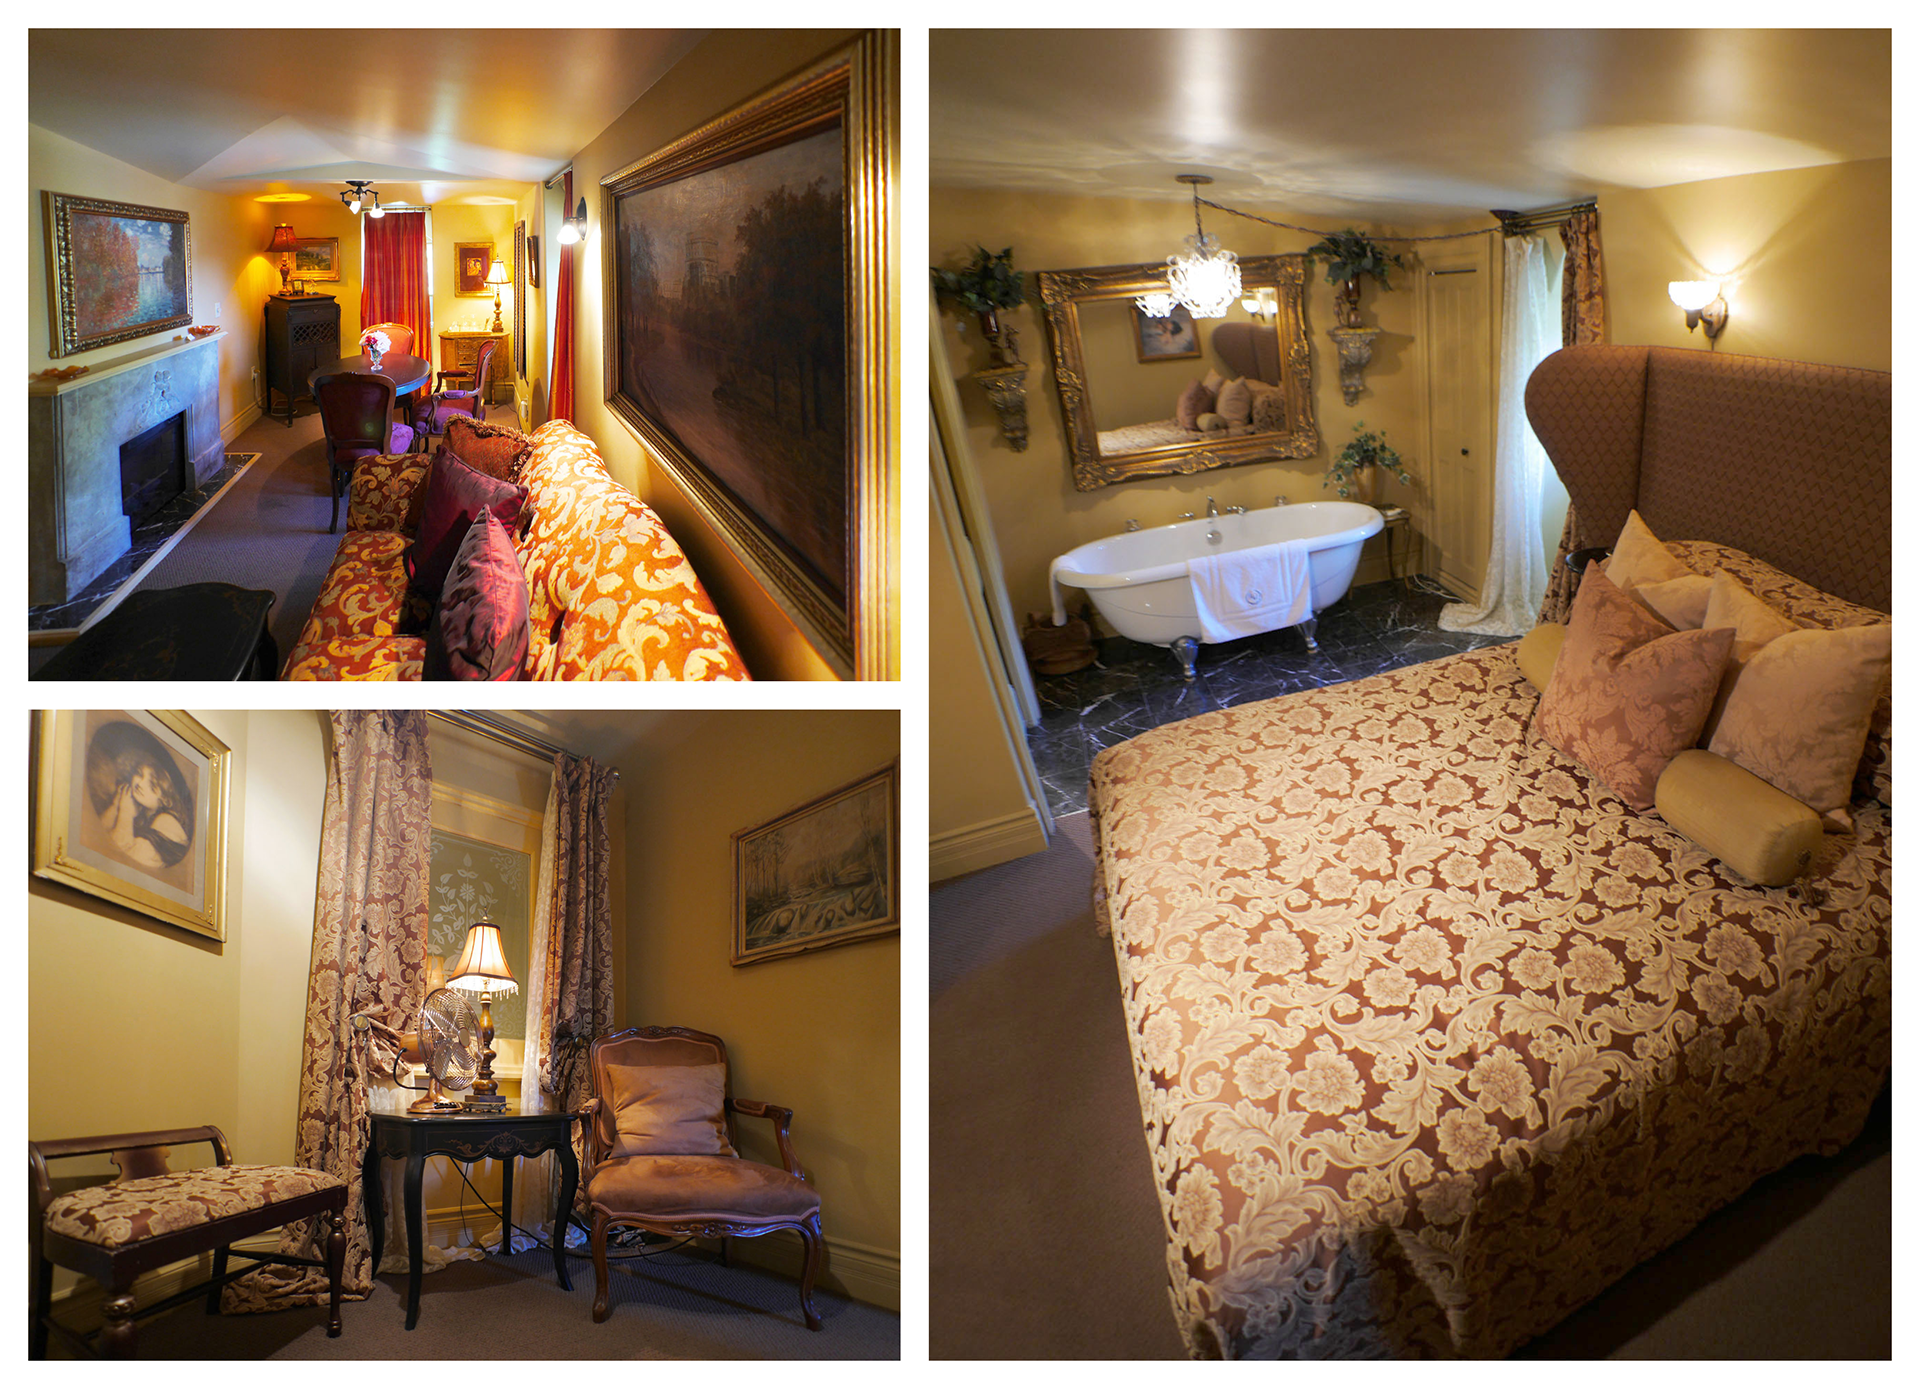 16-russellmanor-suite.png